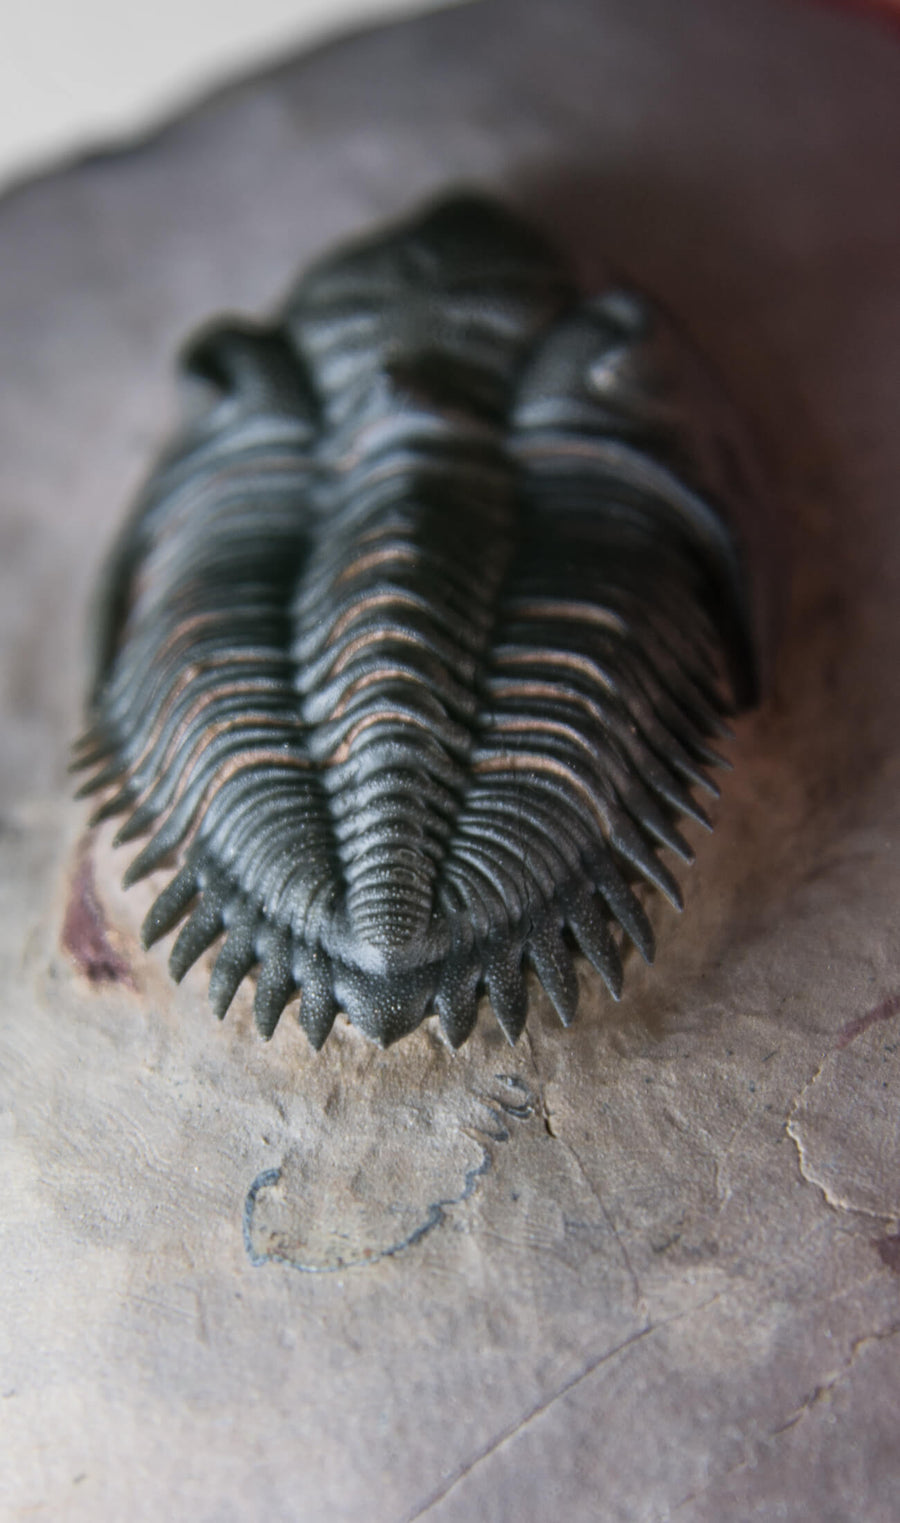 A beautifully sized Metacanthina maderensis fossil trilobite within the original authentic bedrock measuring 102mm